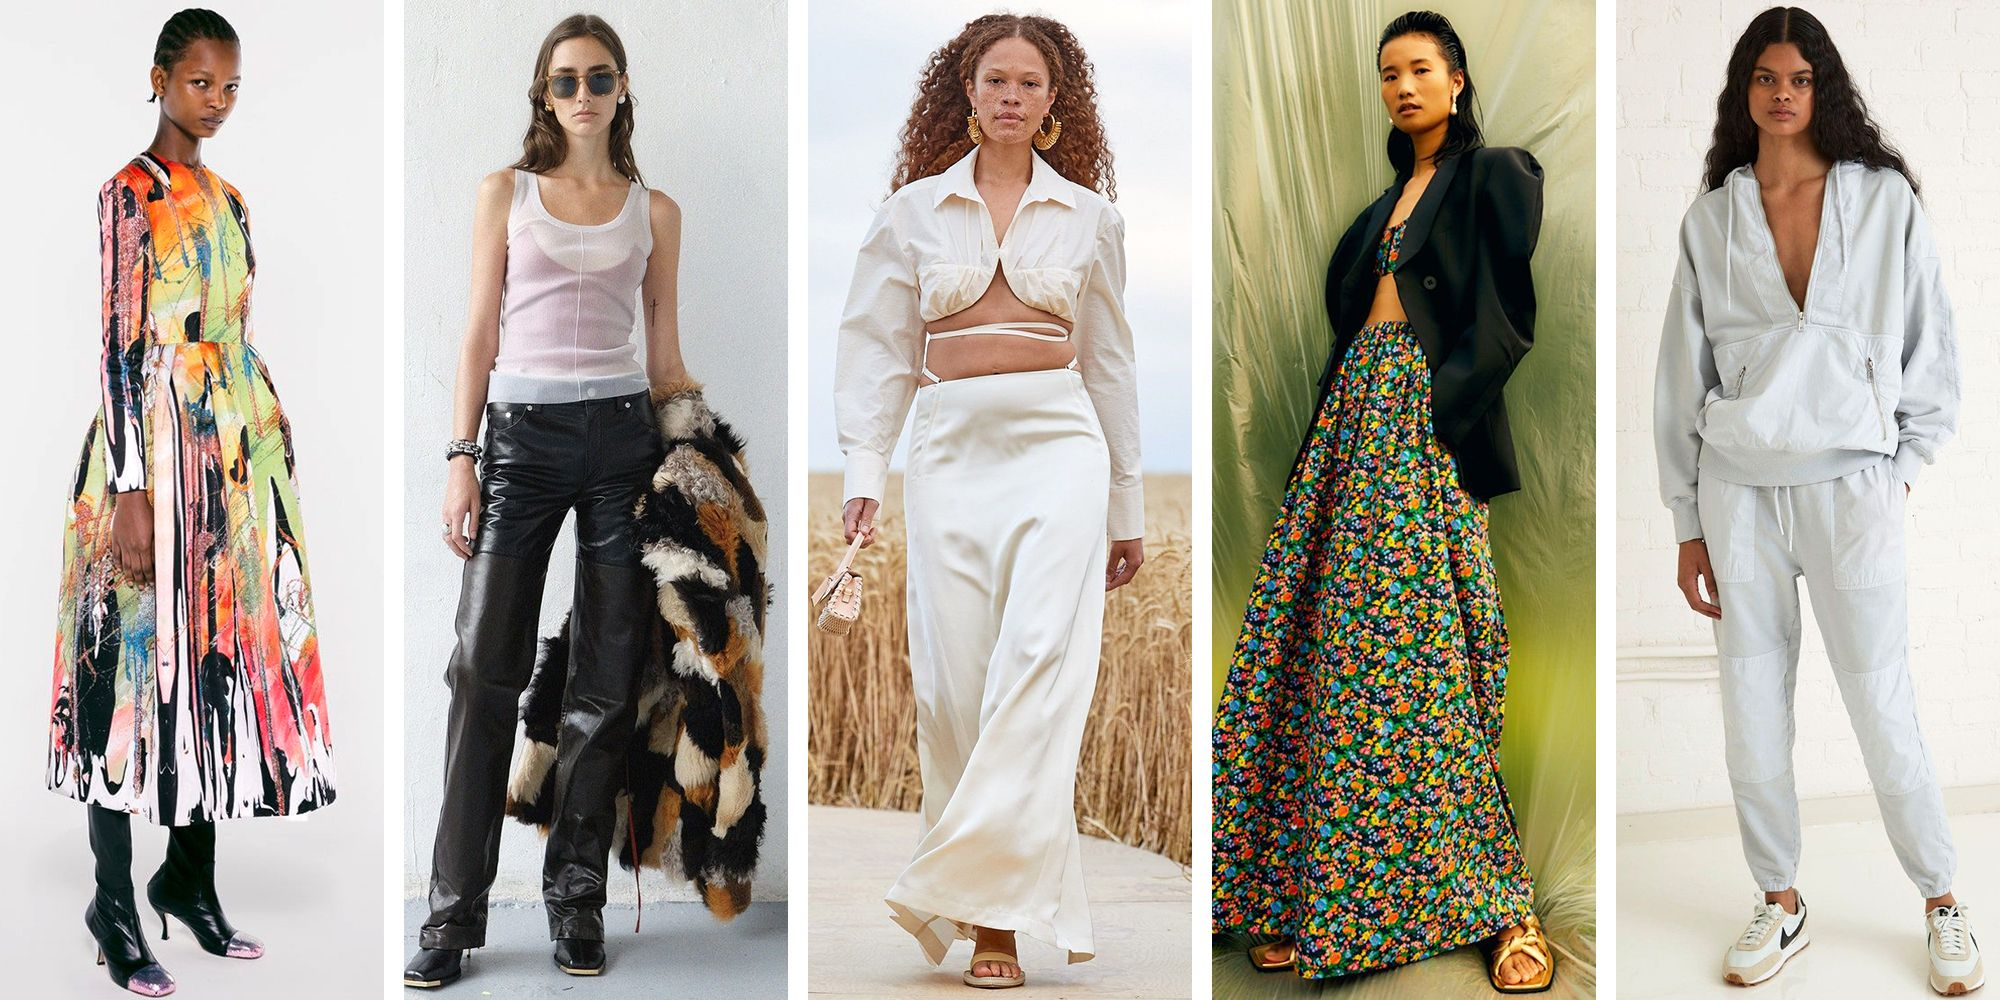 The Biggest Trends of Spring 6 So Far